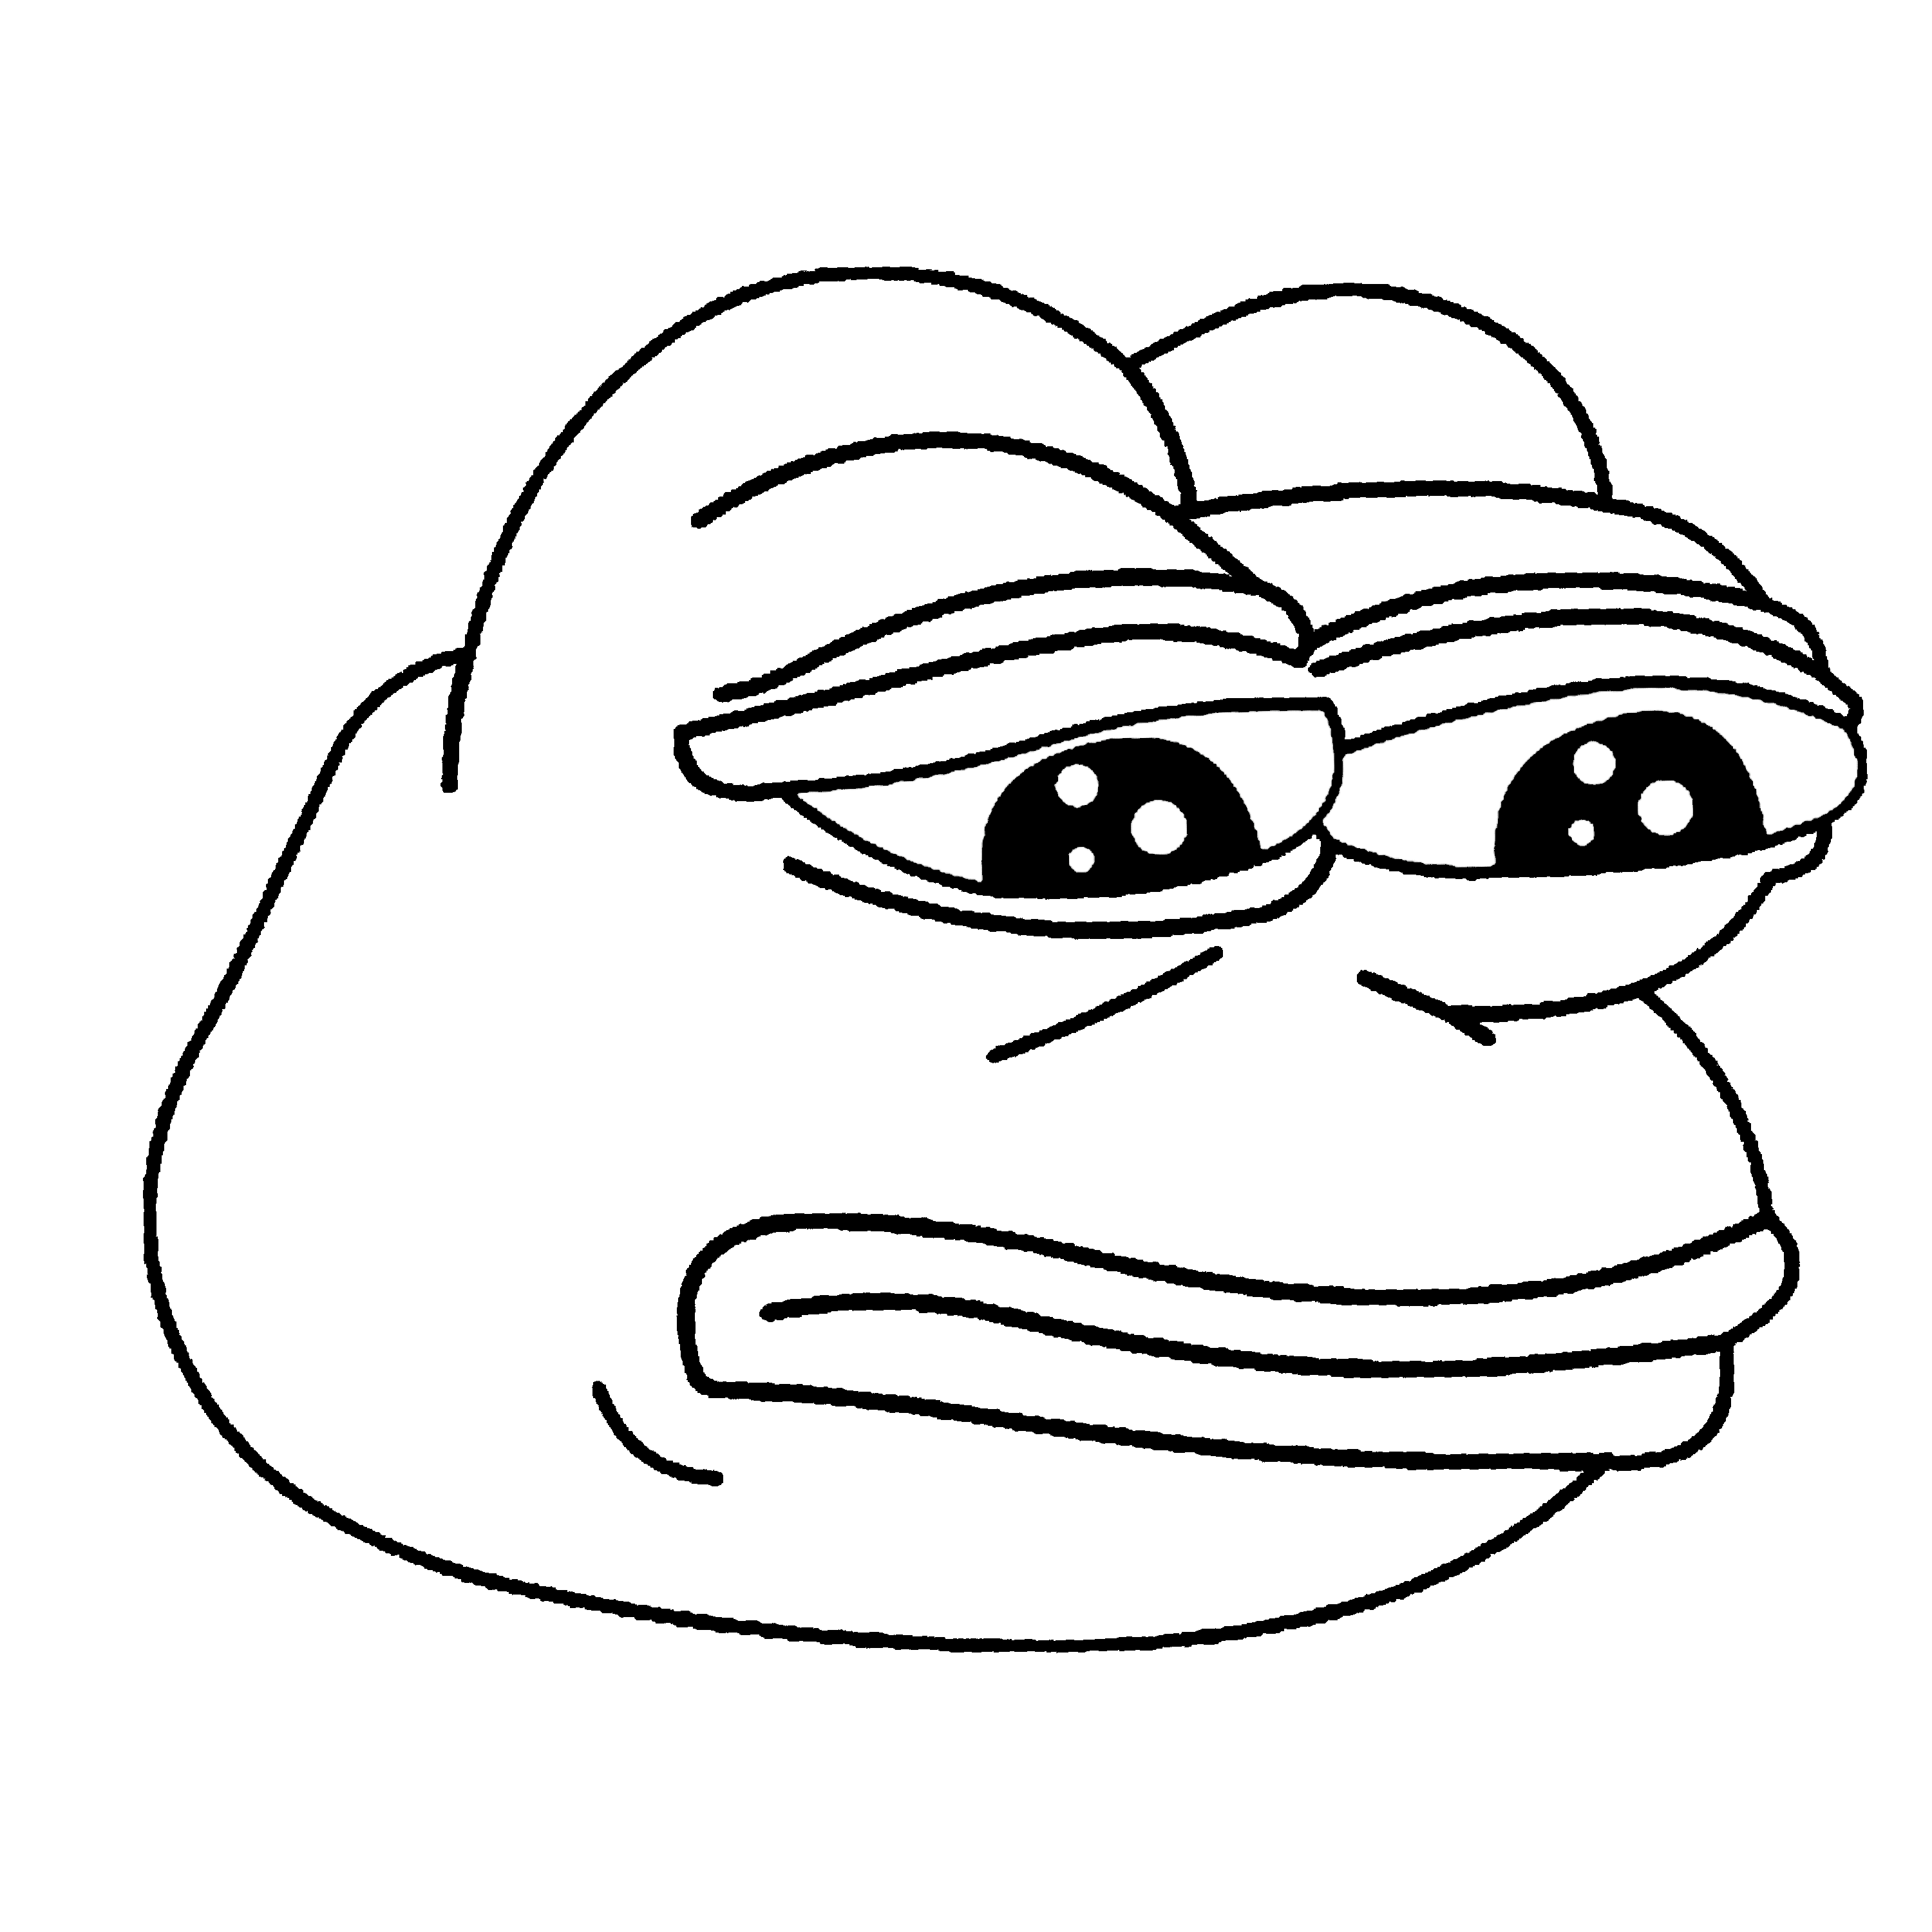 clipart library library The frog black x. Pepe drawing